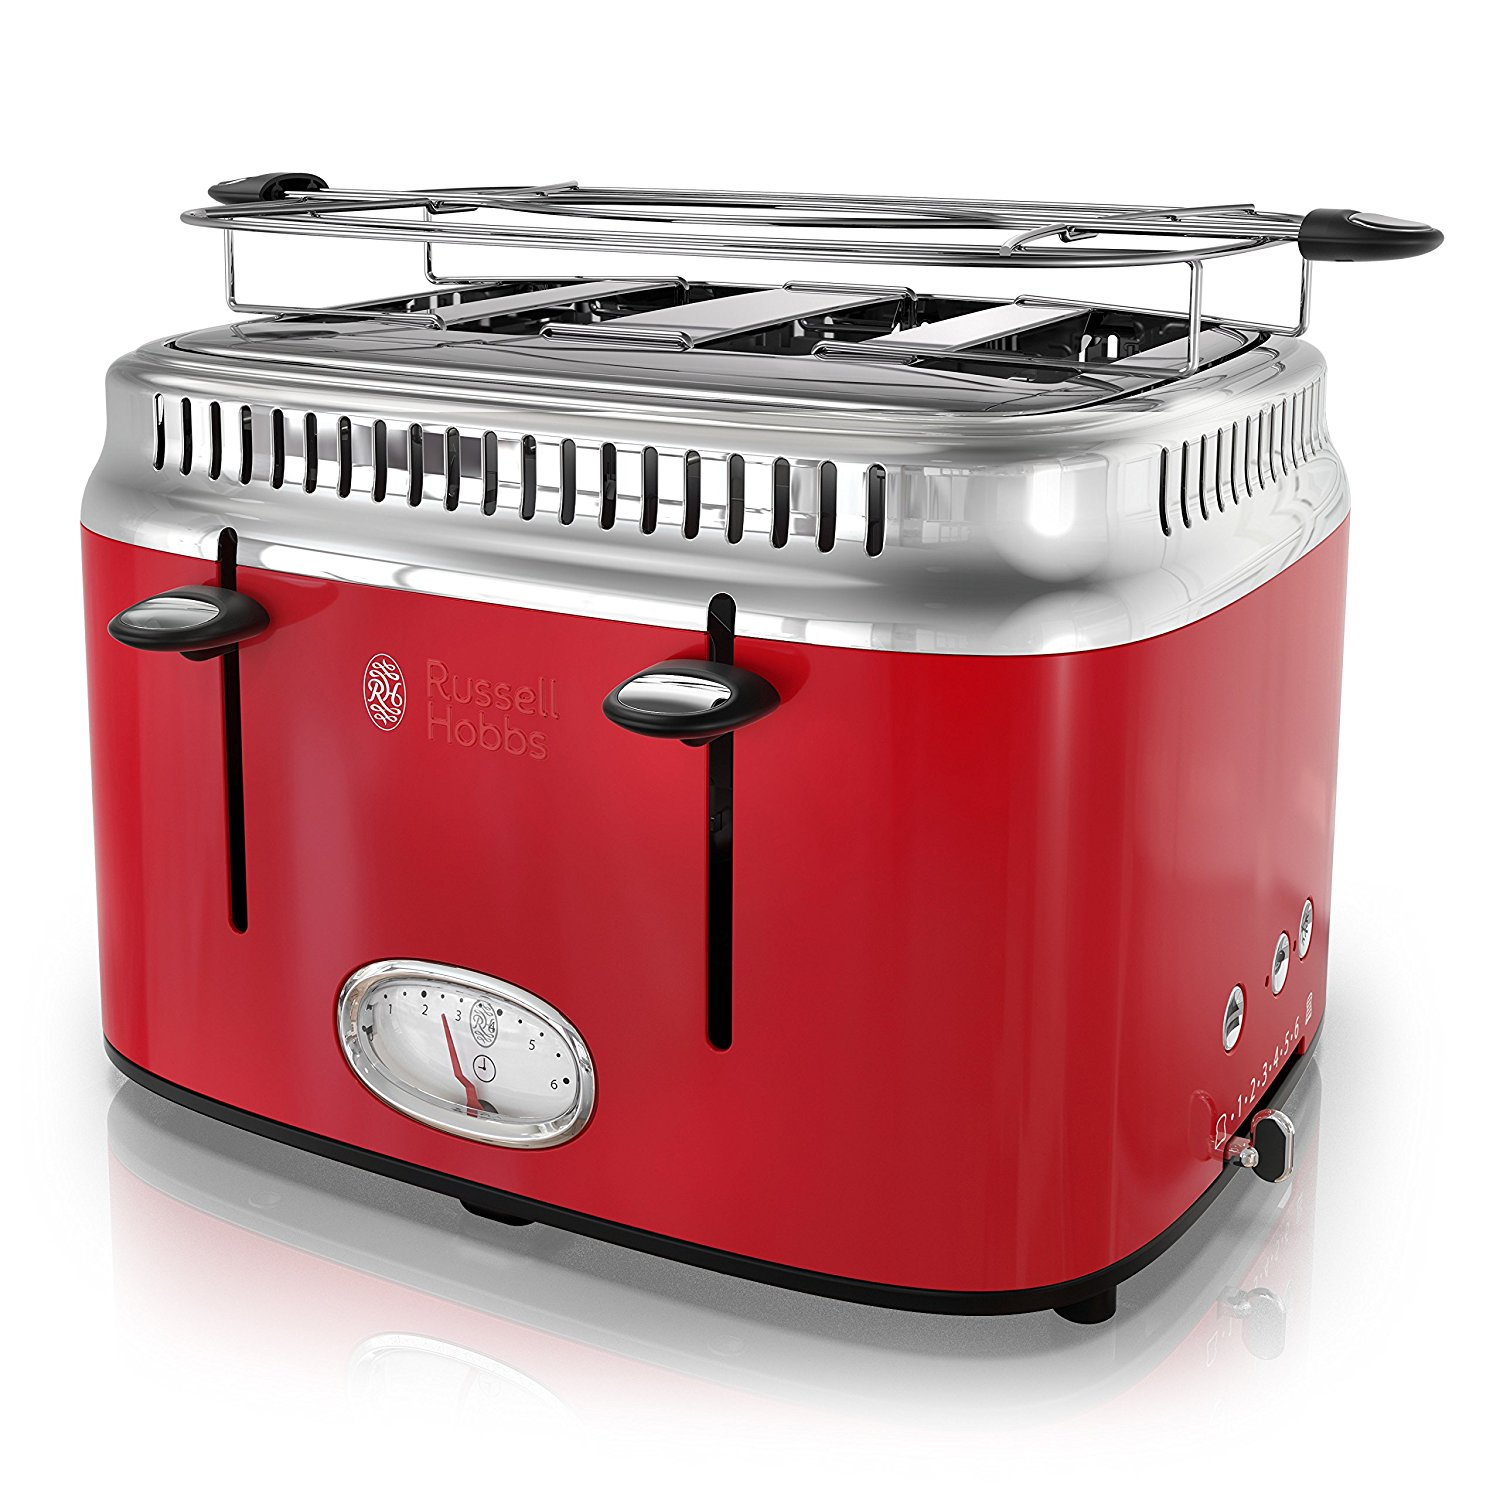 Red Russell Hobbs retro toaster oven.